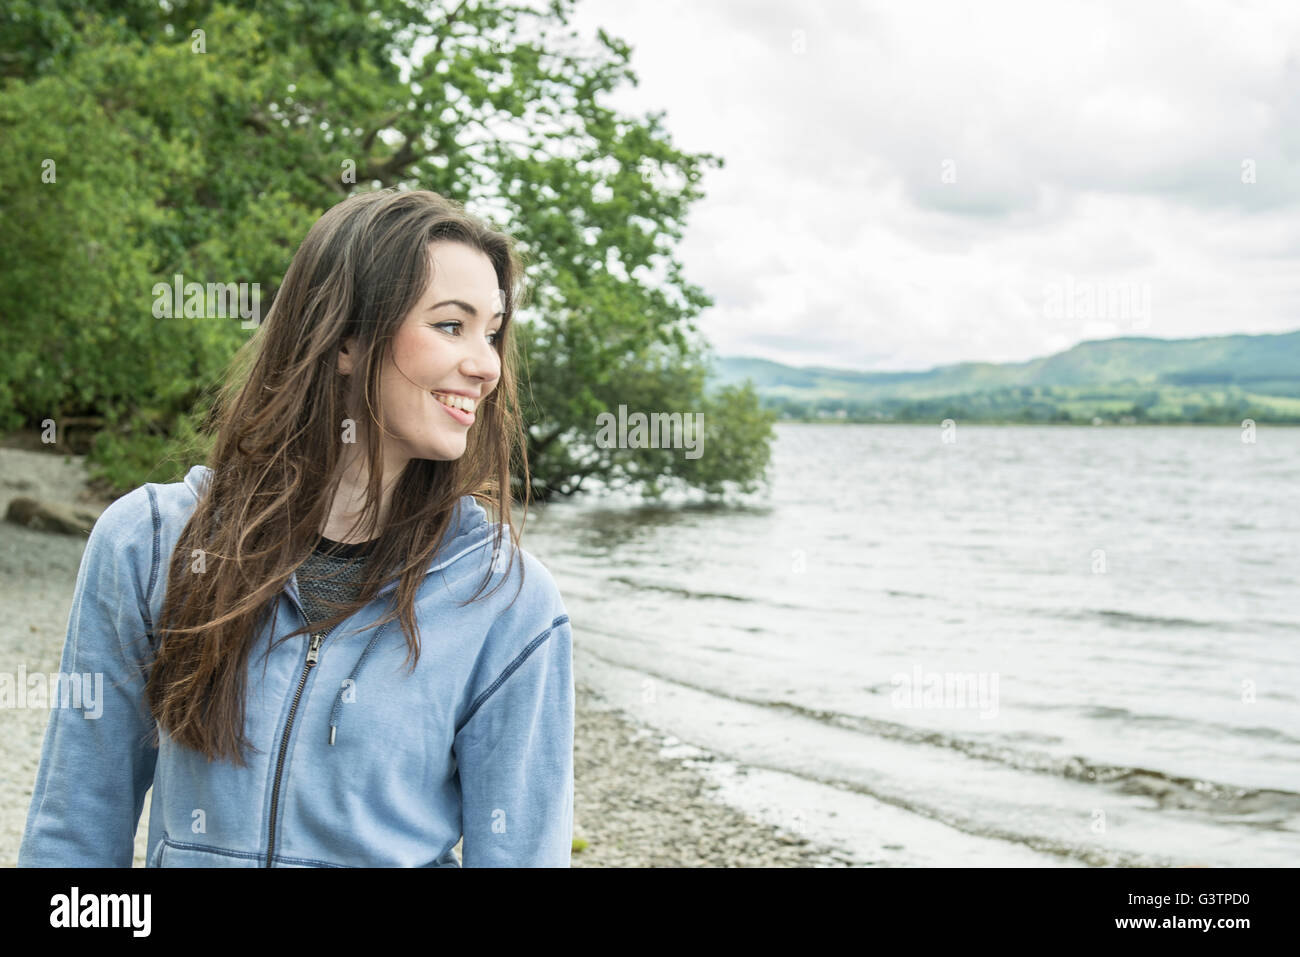 A girl standing smiling on the shore beside Bala Lake in Wales. - Stock Image